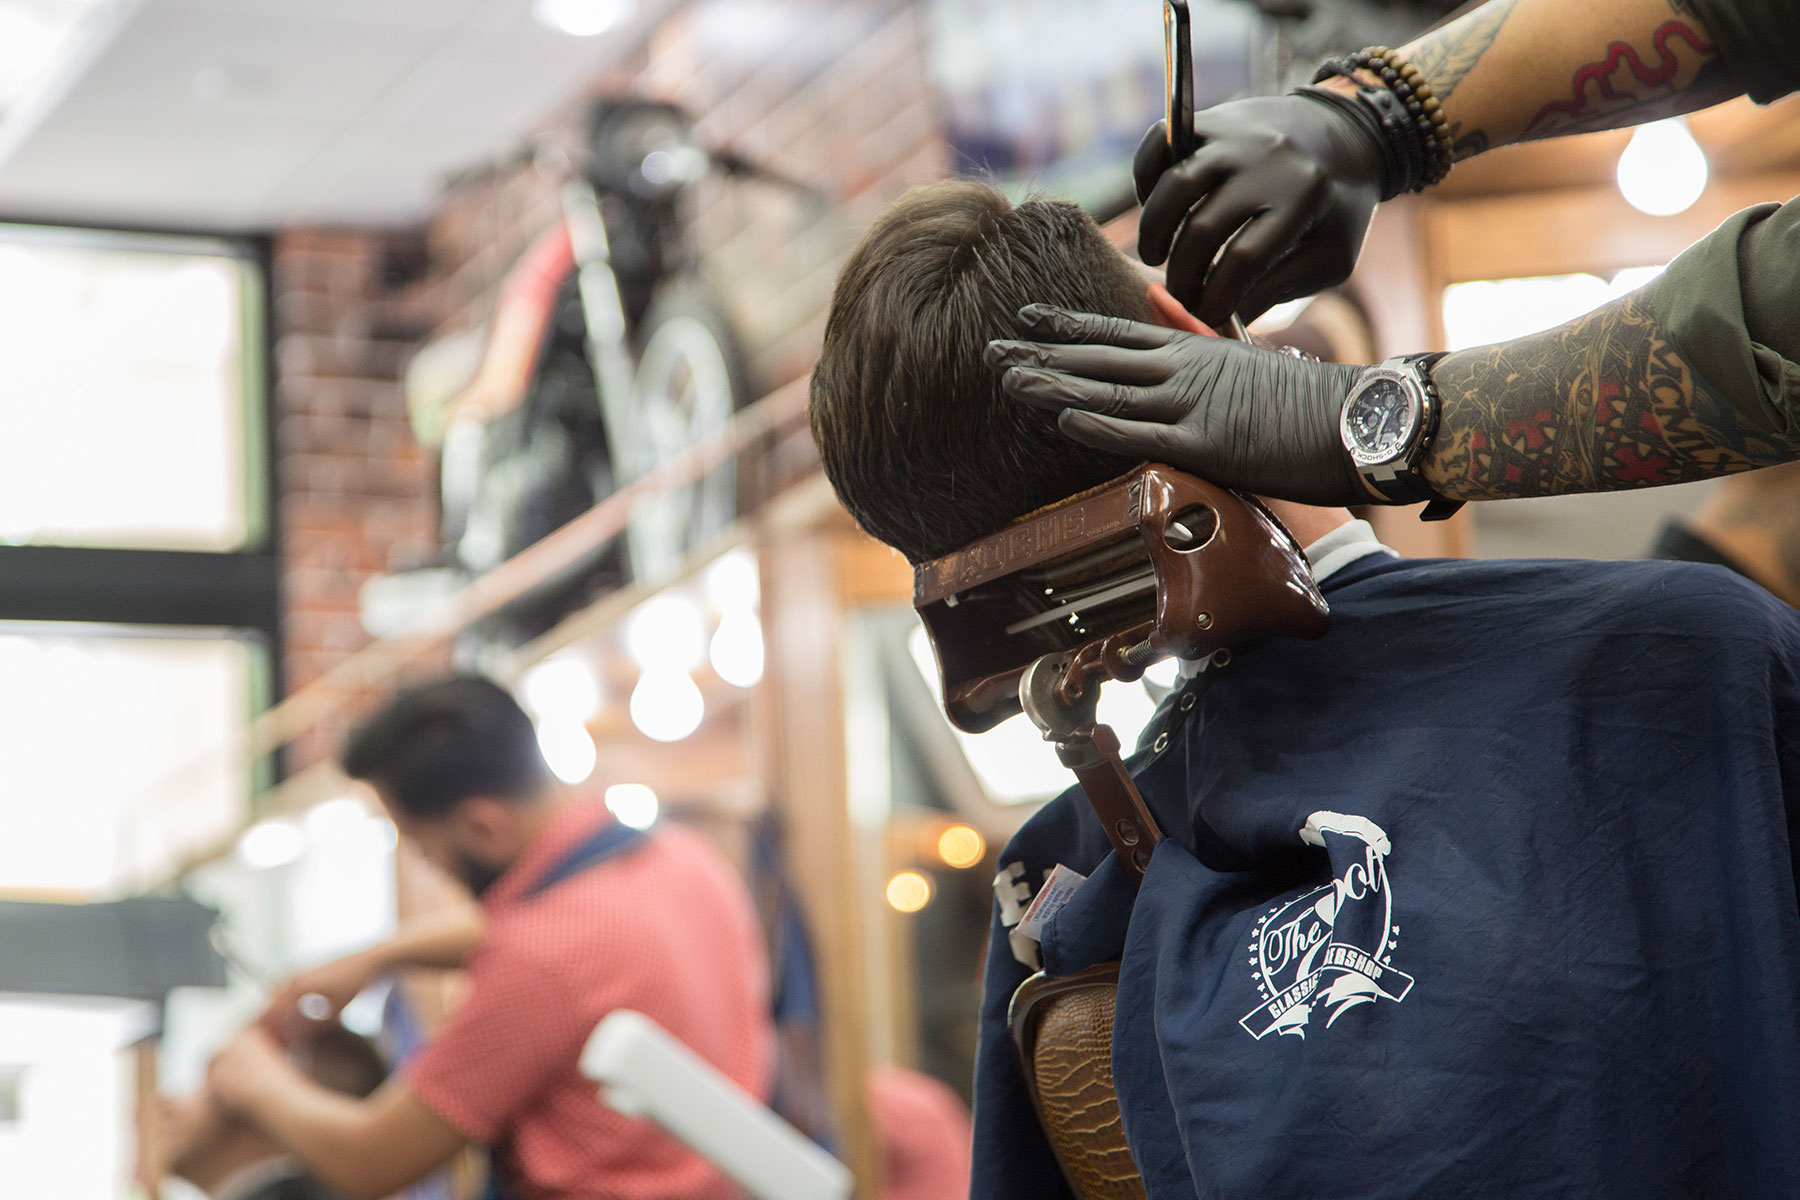 6 locations in Miami: The Spot Barbershop